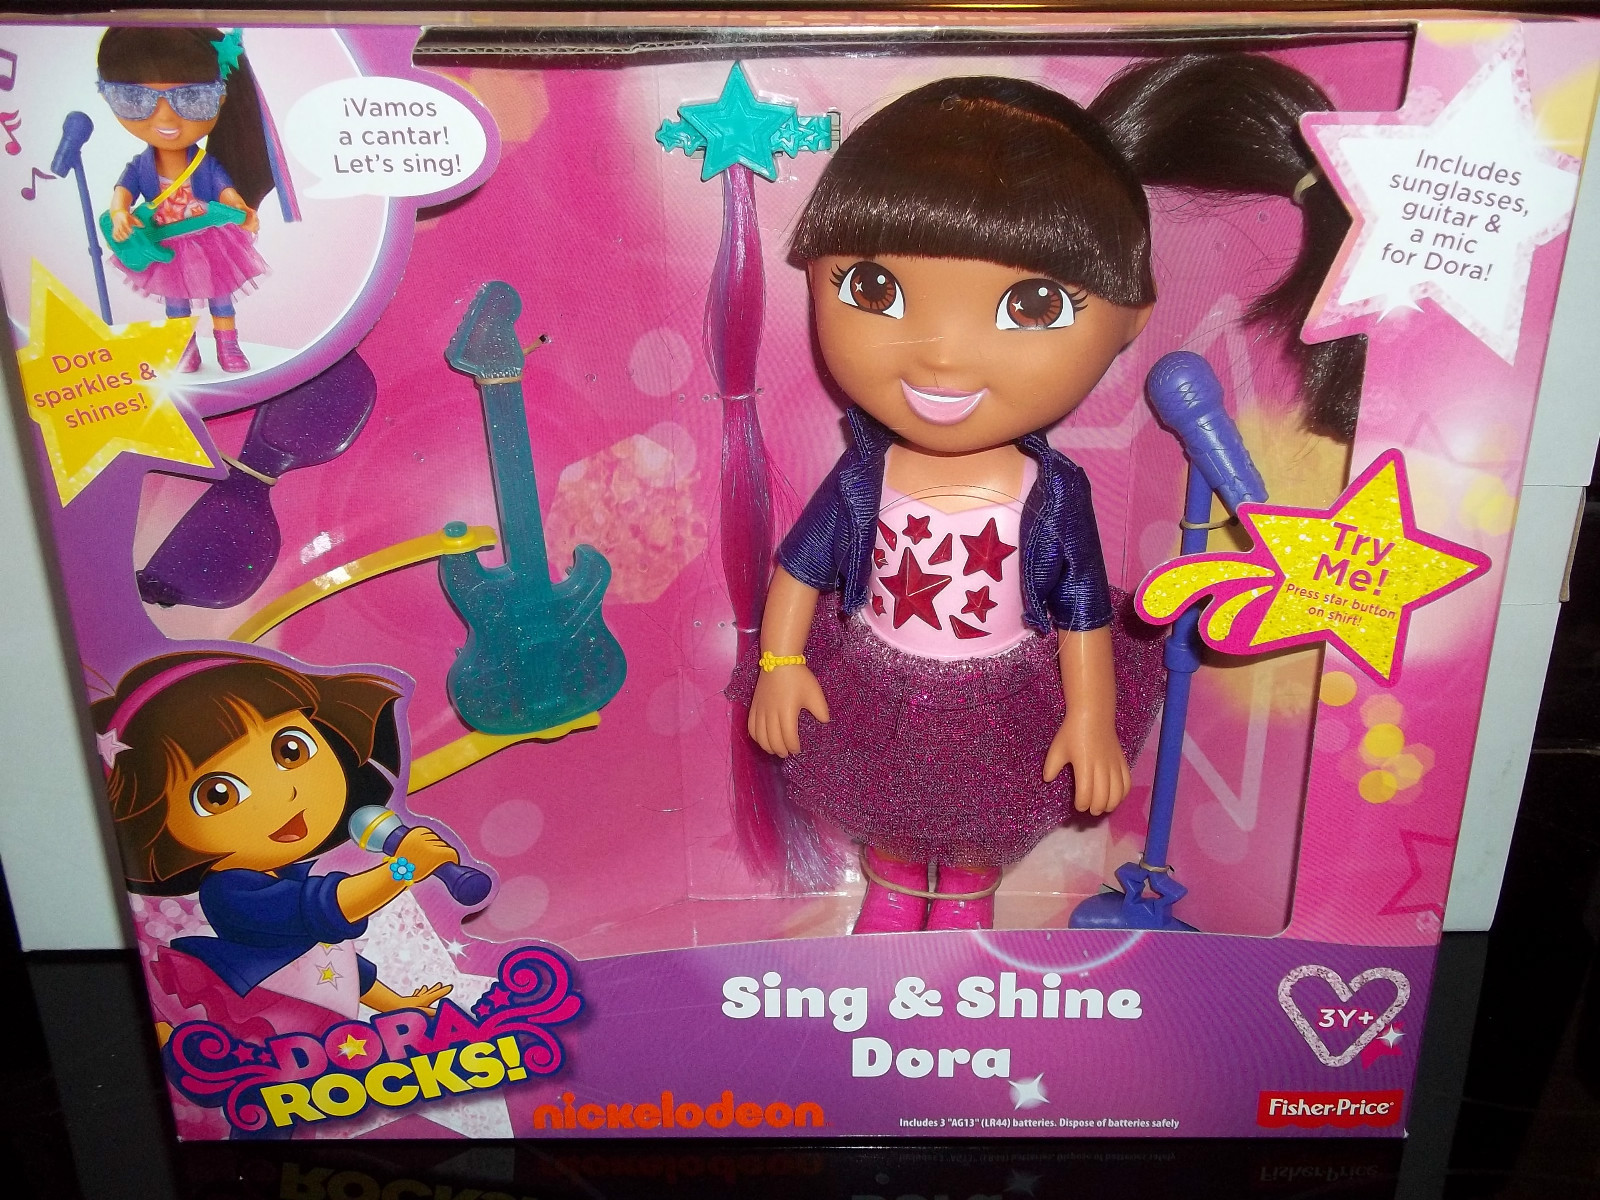 Toy Guitar Target New Hot Toy Dora Rocks Available At Target From Nickelodeonpr